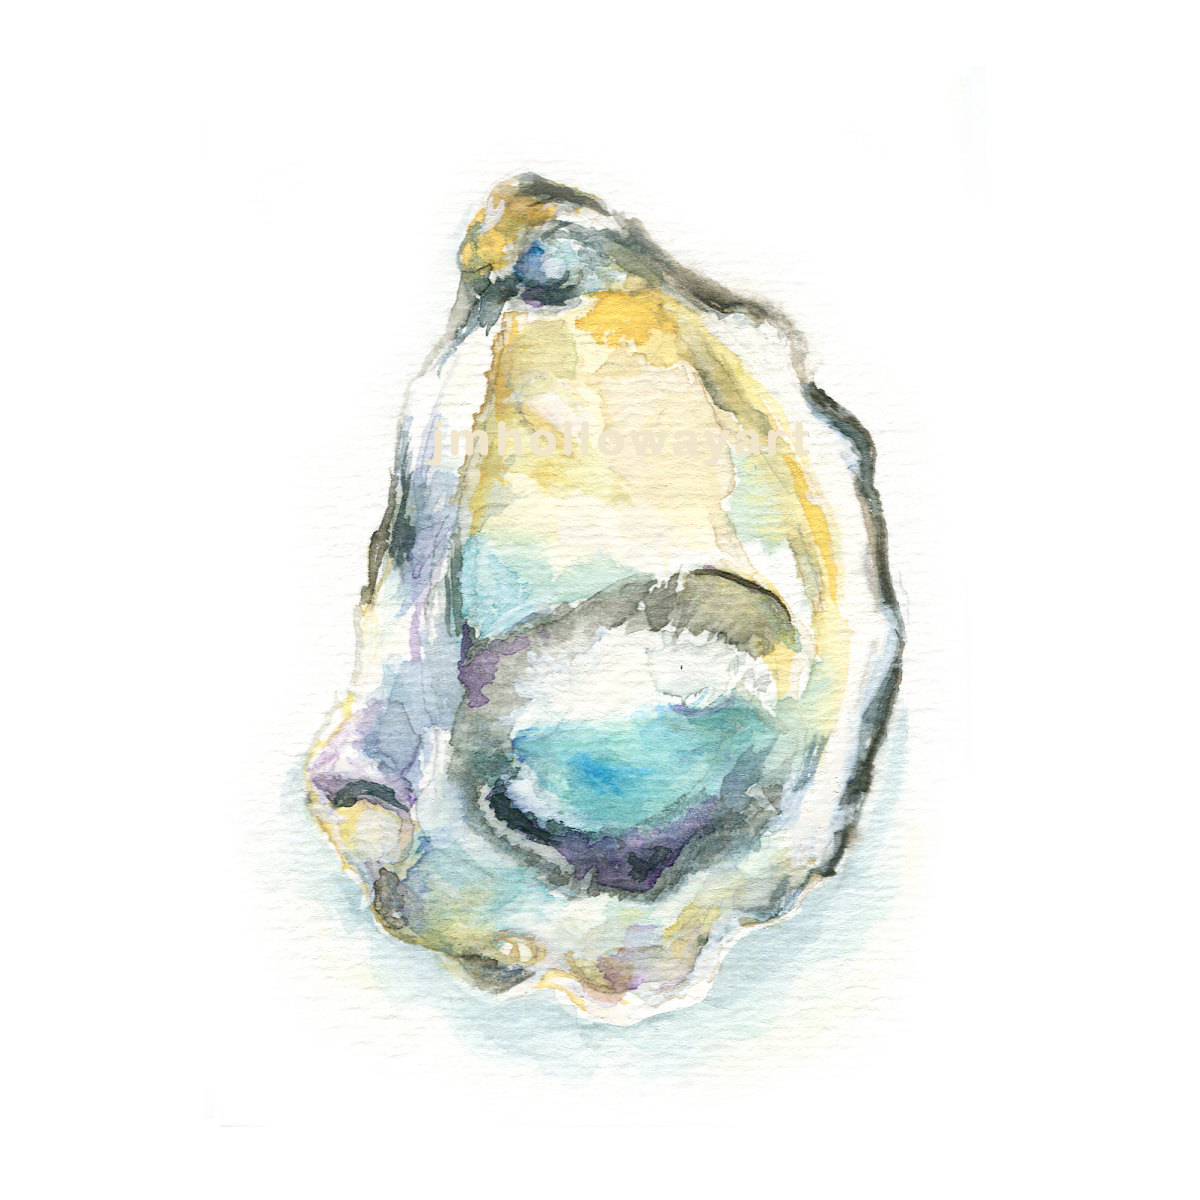 1200x1200 Art, Oyster, Oyster Shell Print, Watercolor, Oyster Print, Shell